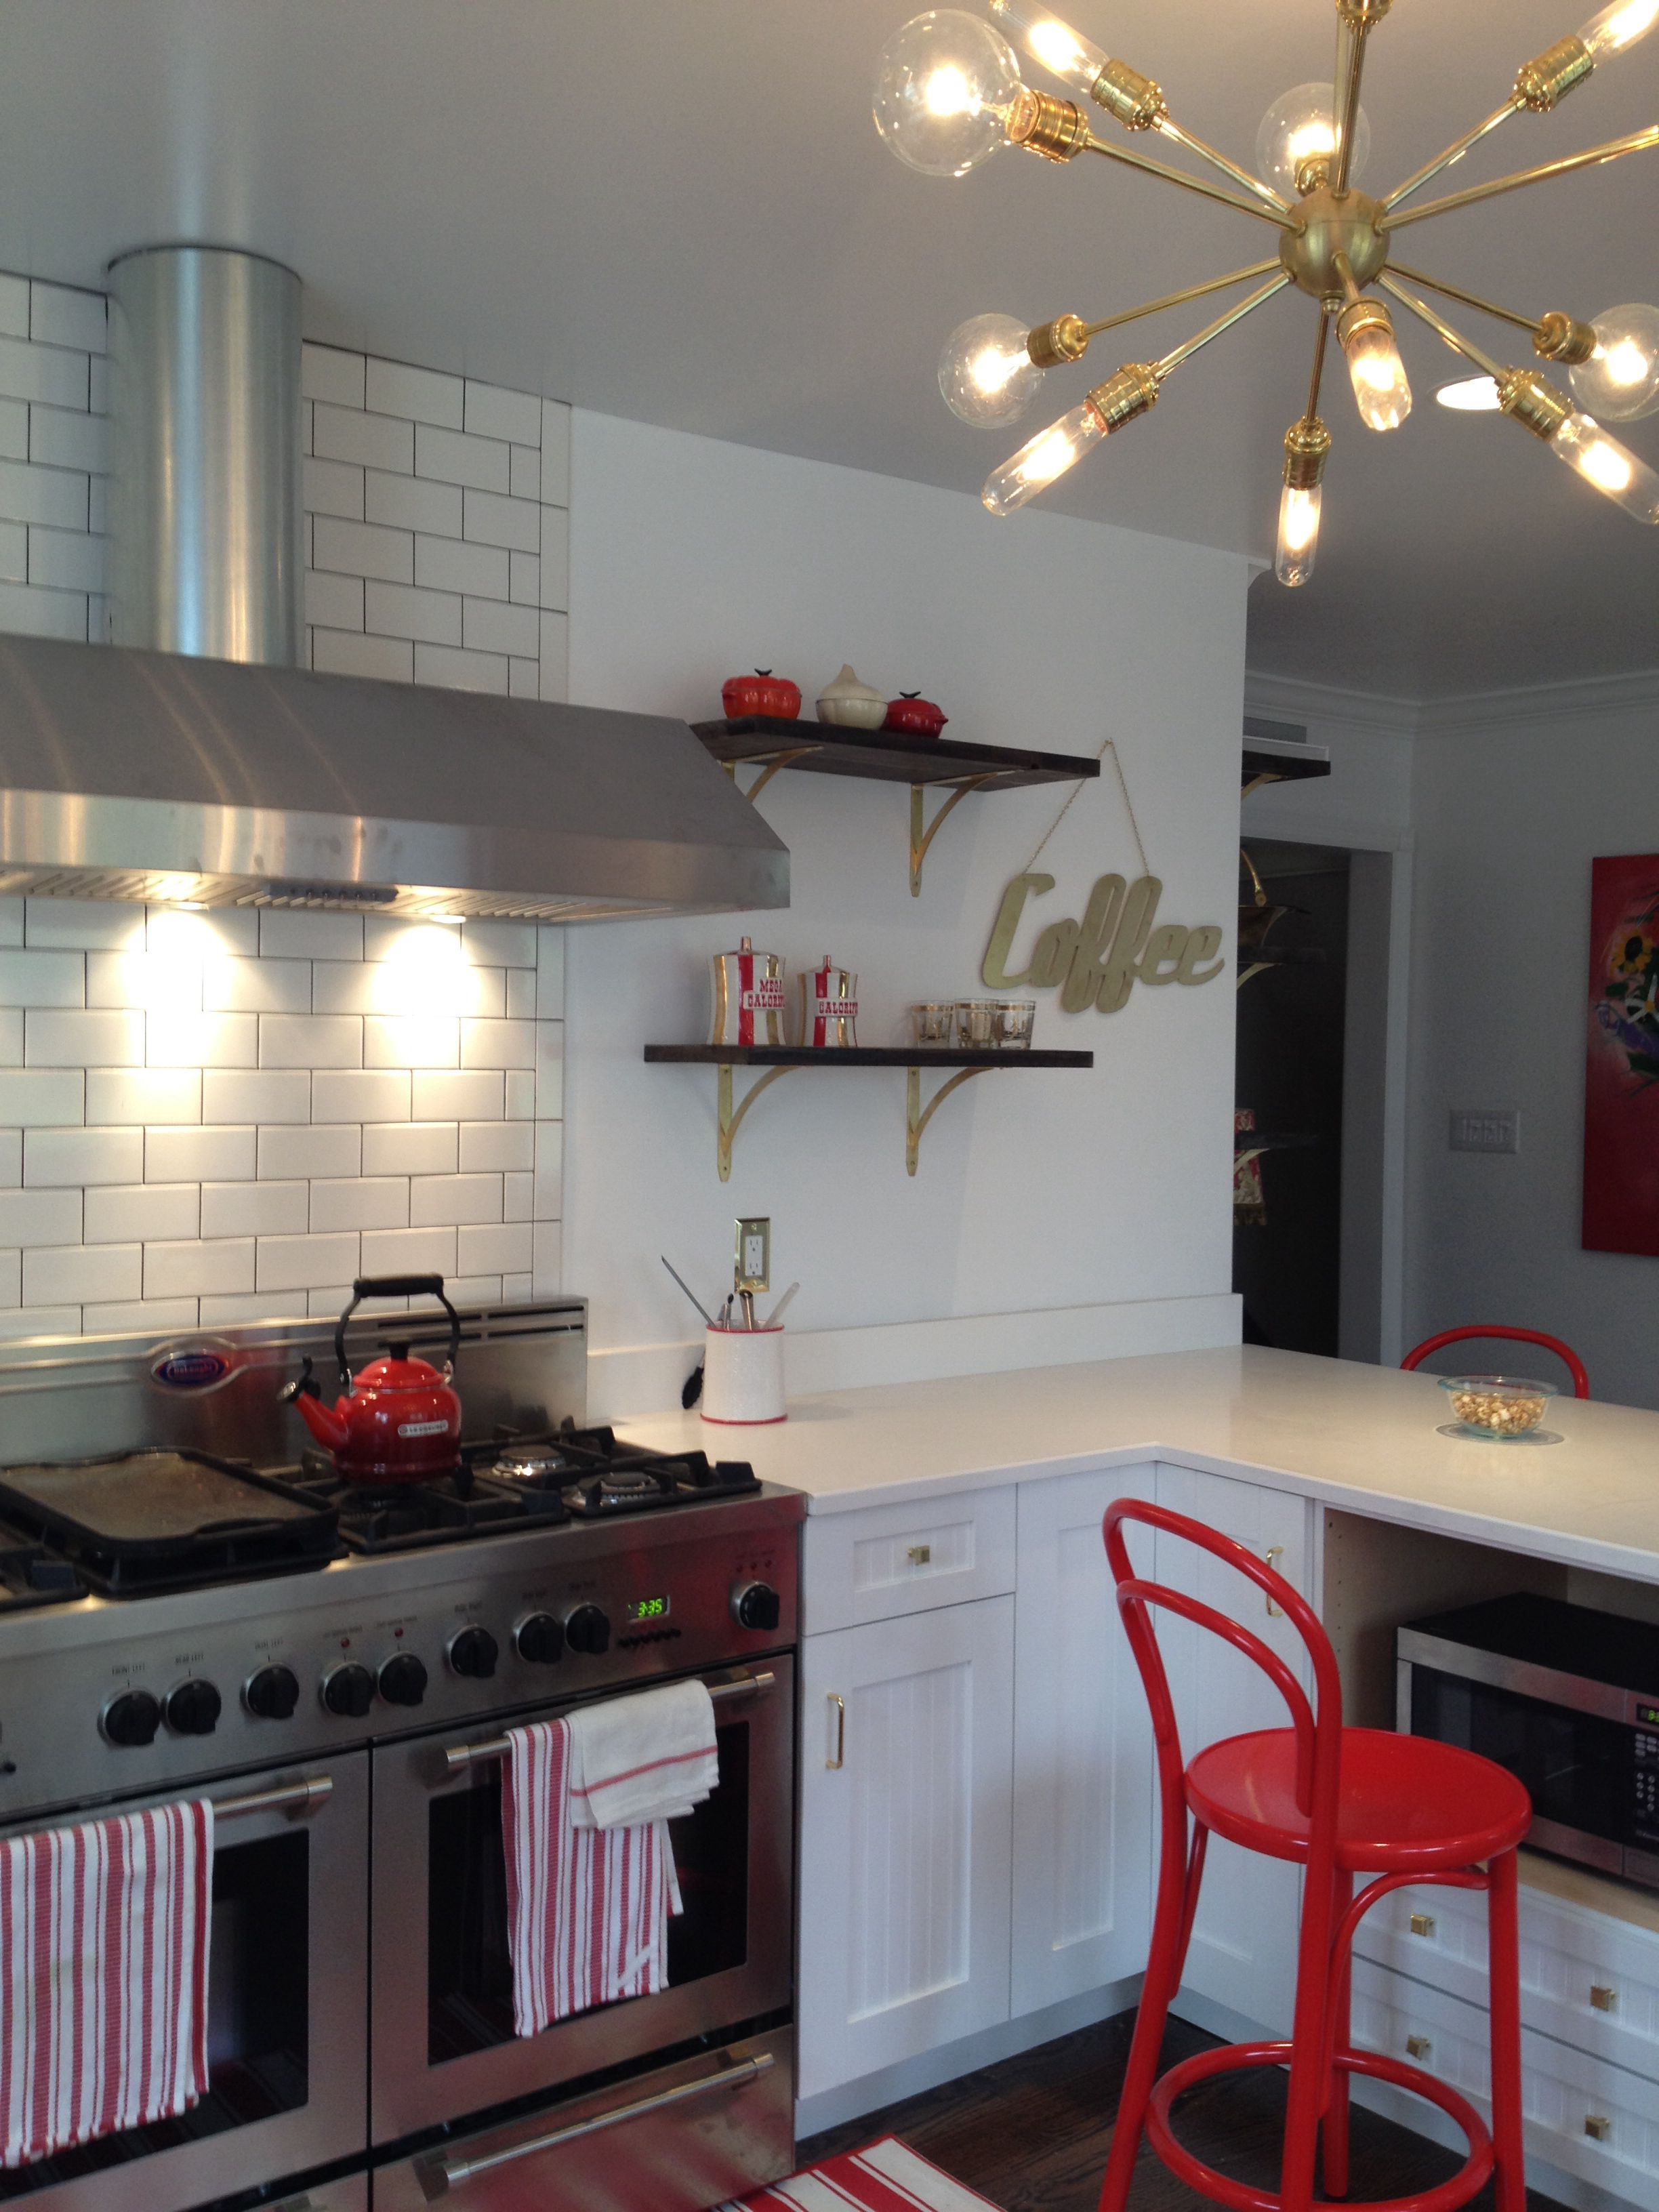 White Kitchen Project Complete With Sputnik Chandelier & Red Accents